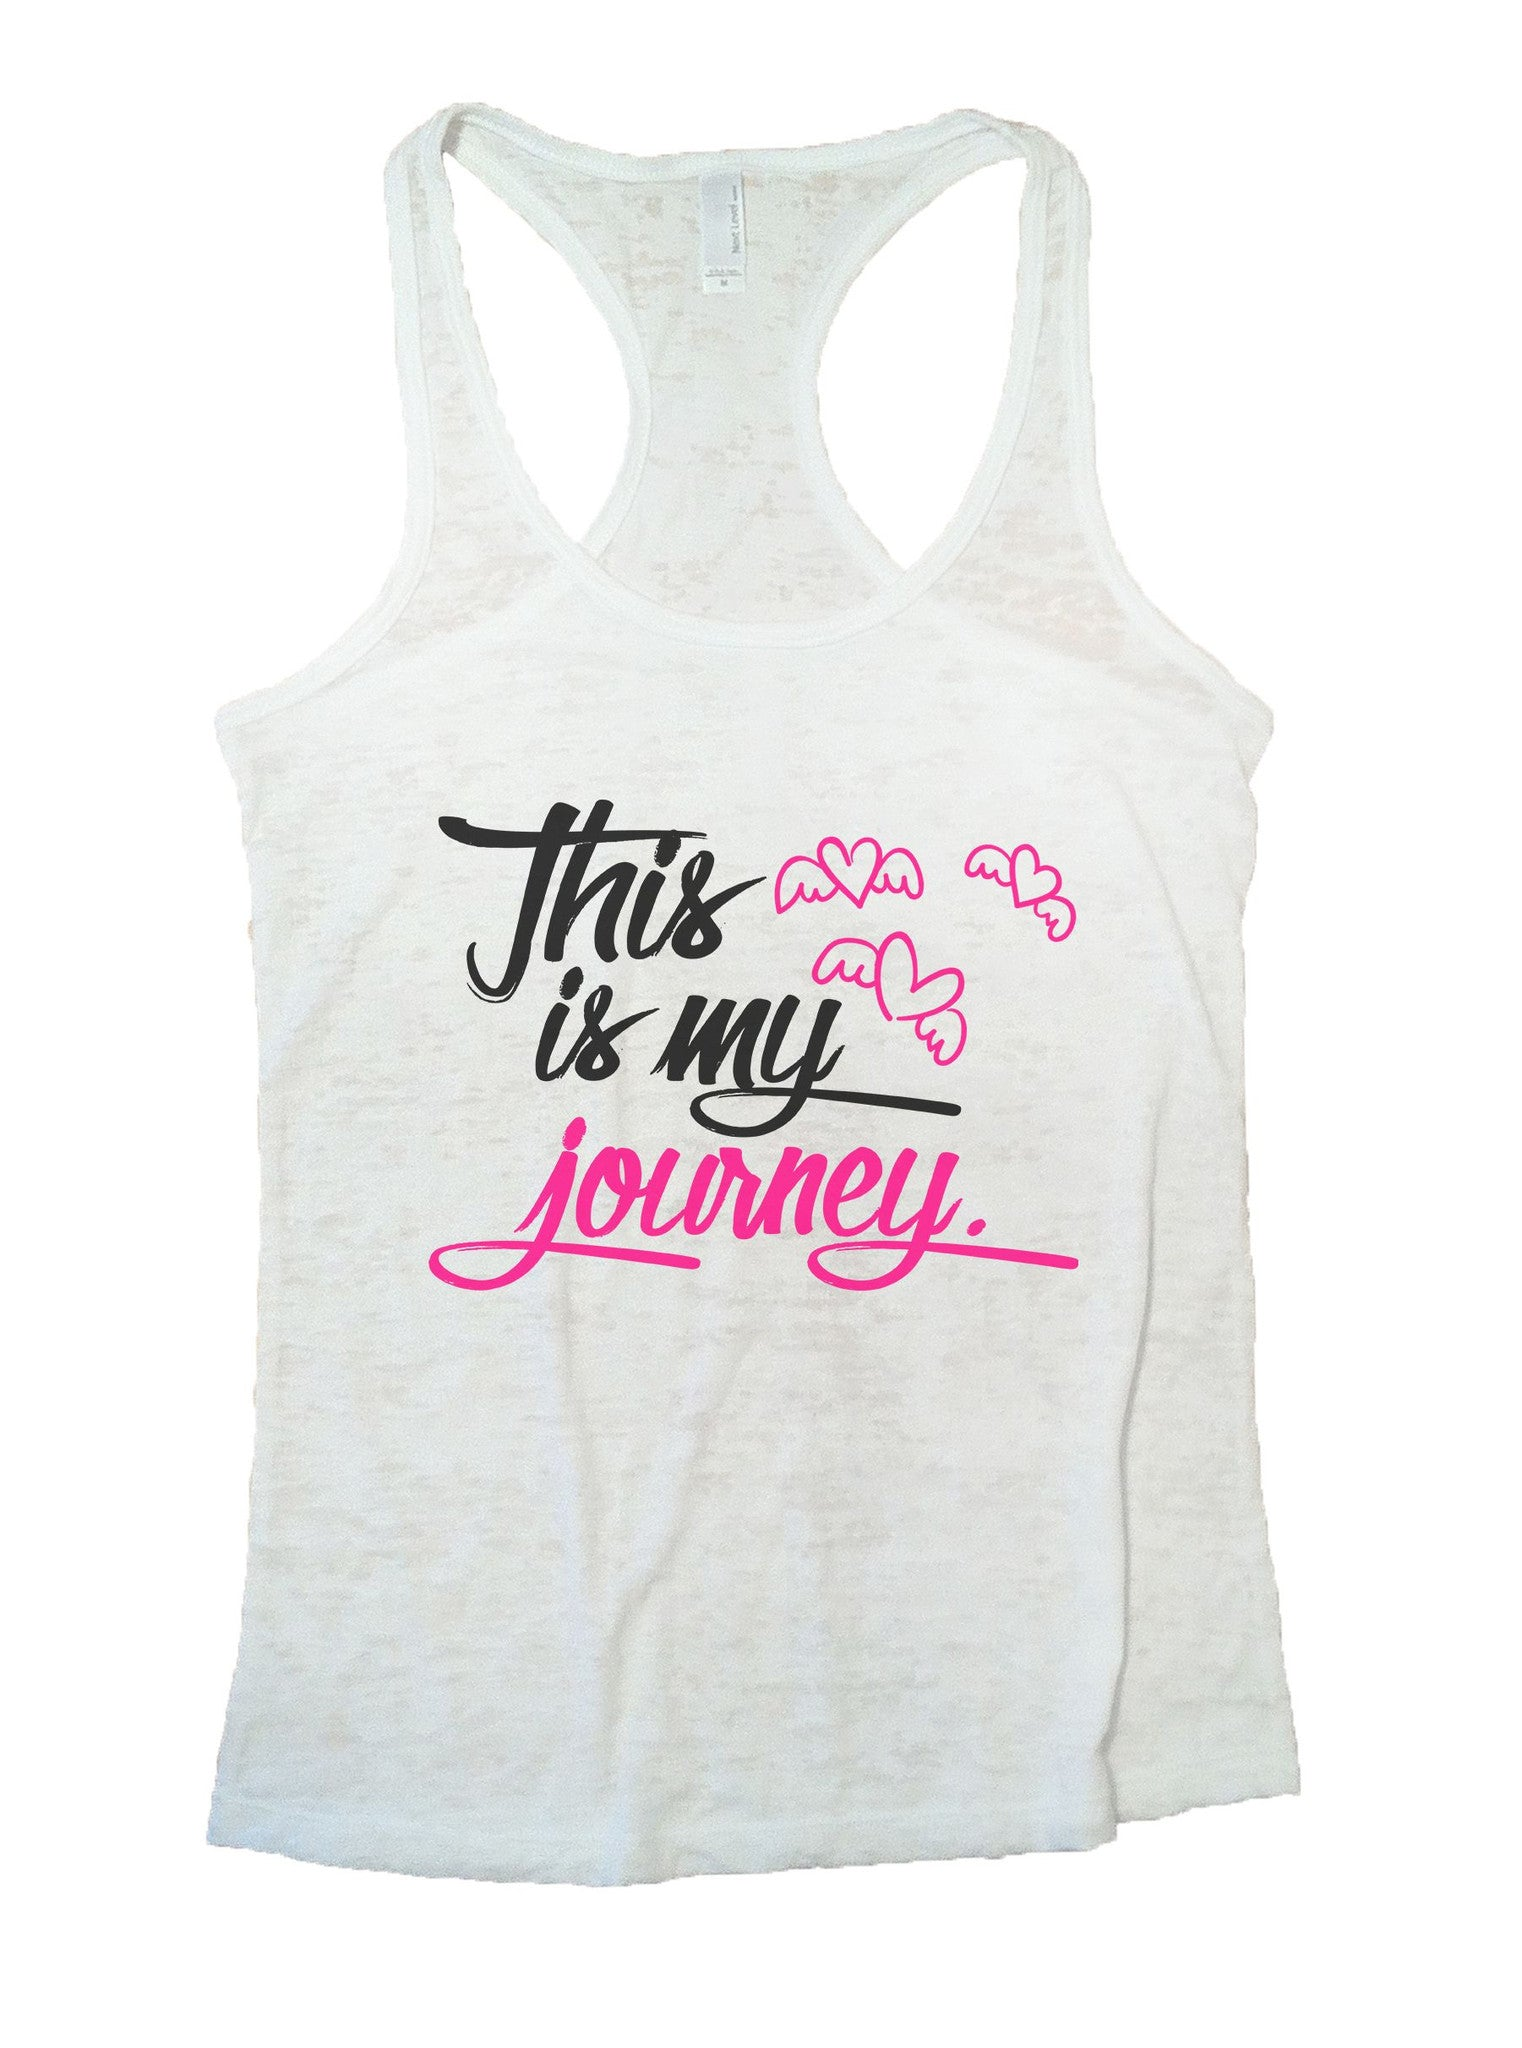 This Is My Journey Burnout Tank Top By BurnoutTankTops.com - 1042 - Funny Shirts Tank Tops Burnouts and Triblends  - 6